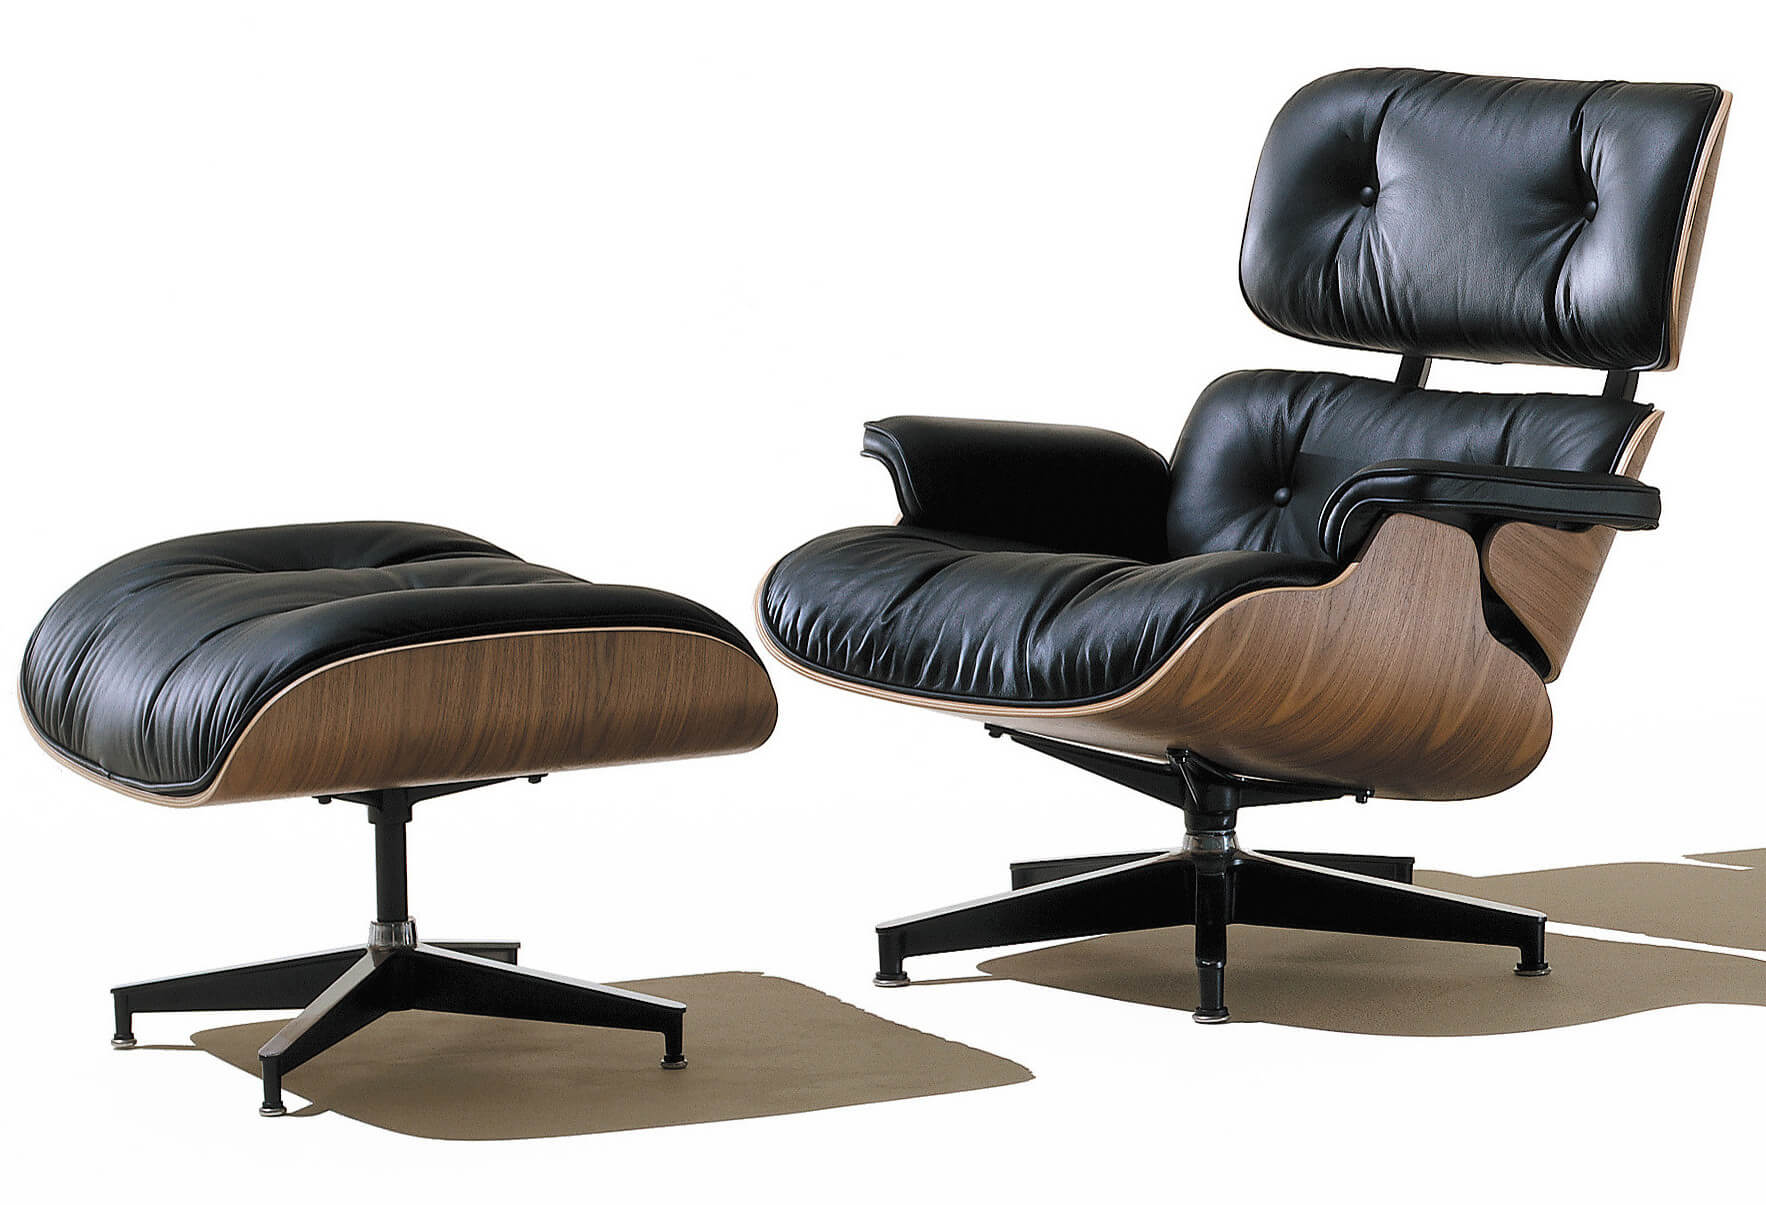 A Notable Type Of Accent Chair Is The Venerable Lounge Model, Boasting A  Reclined,